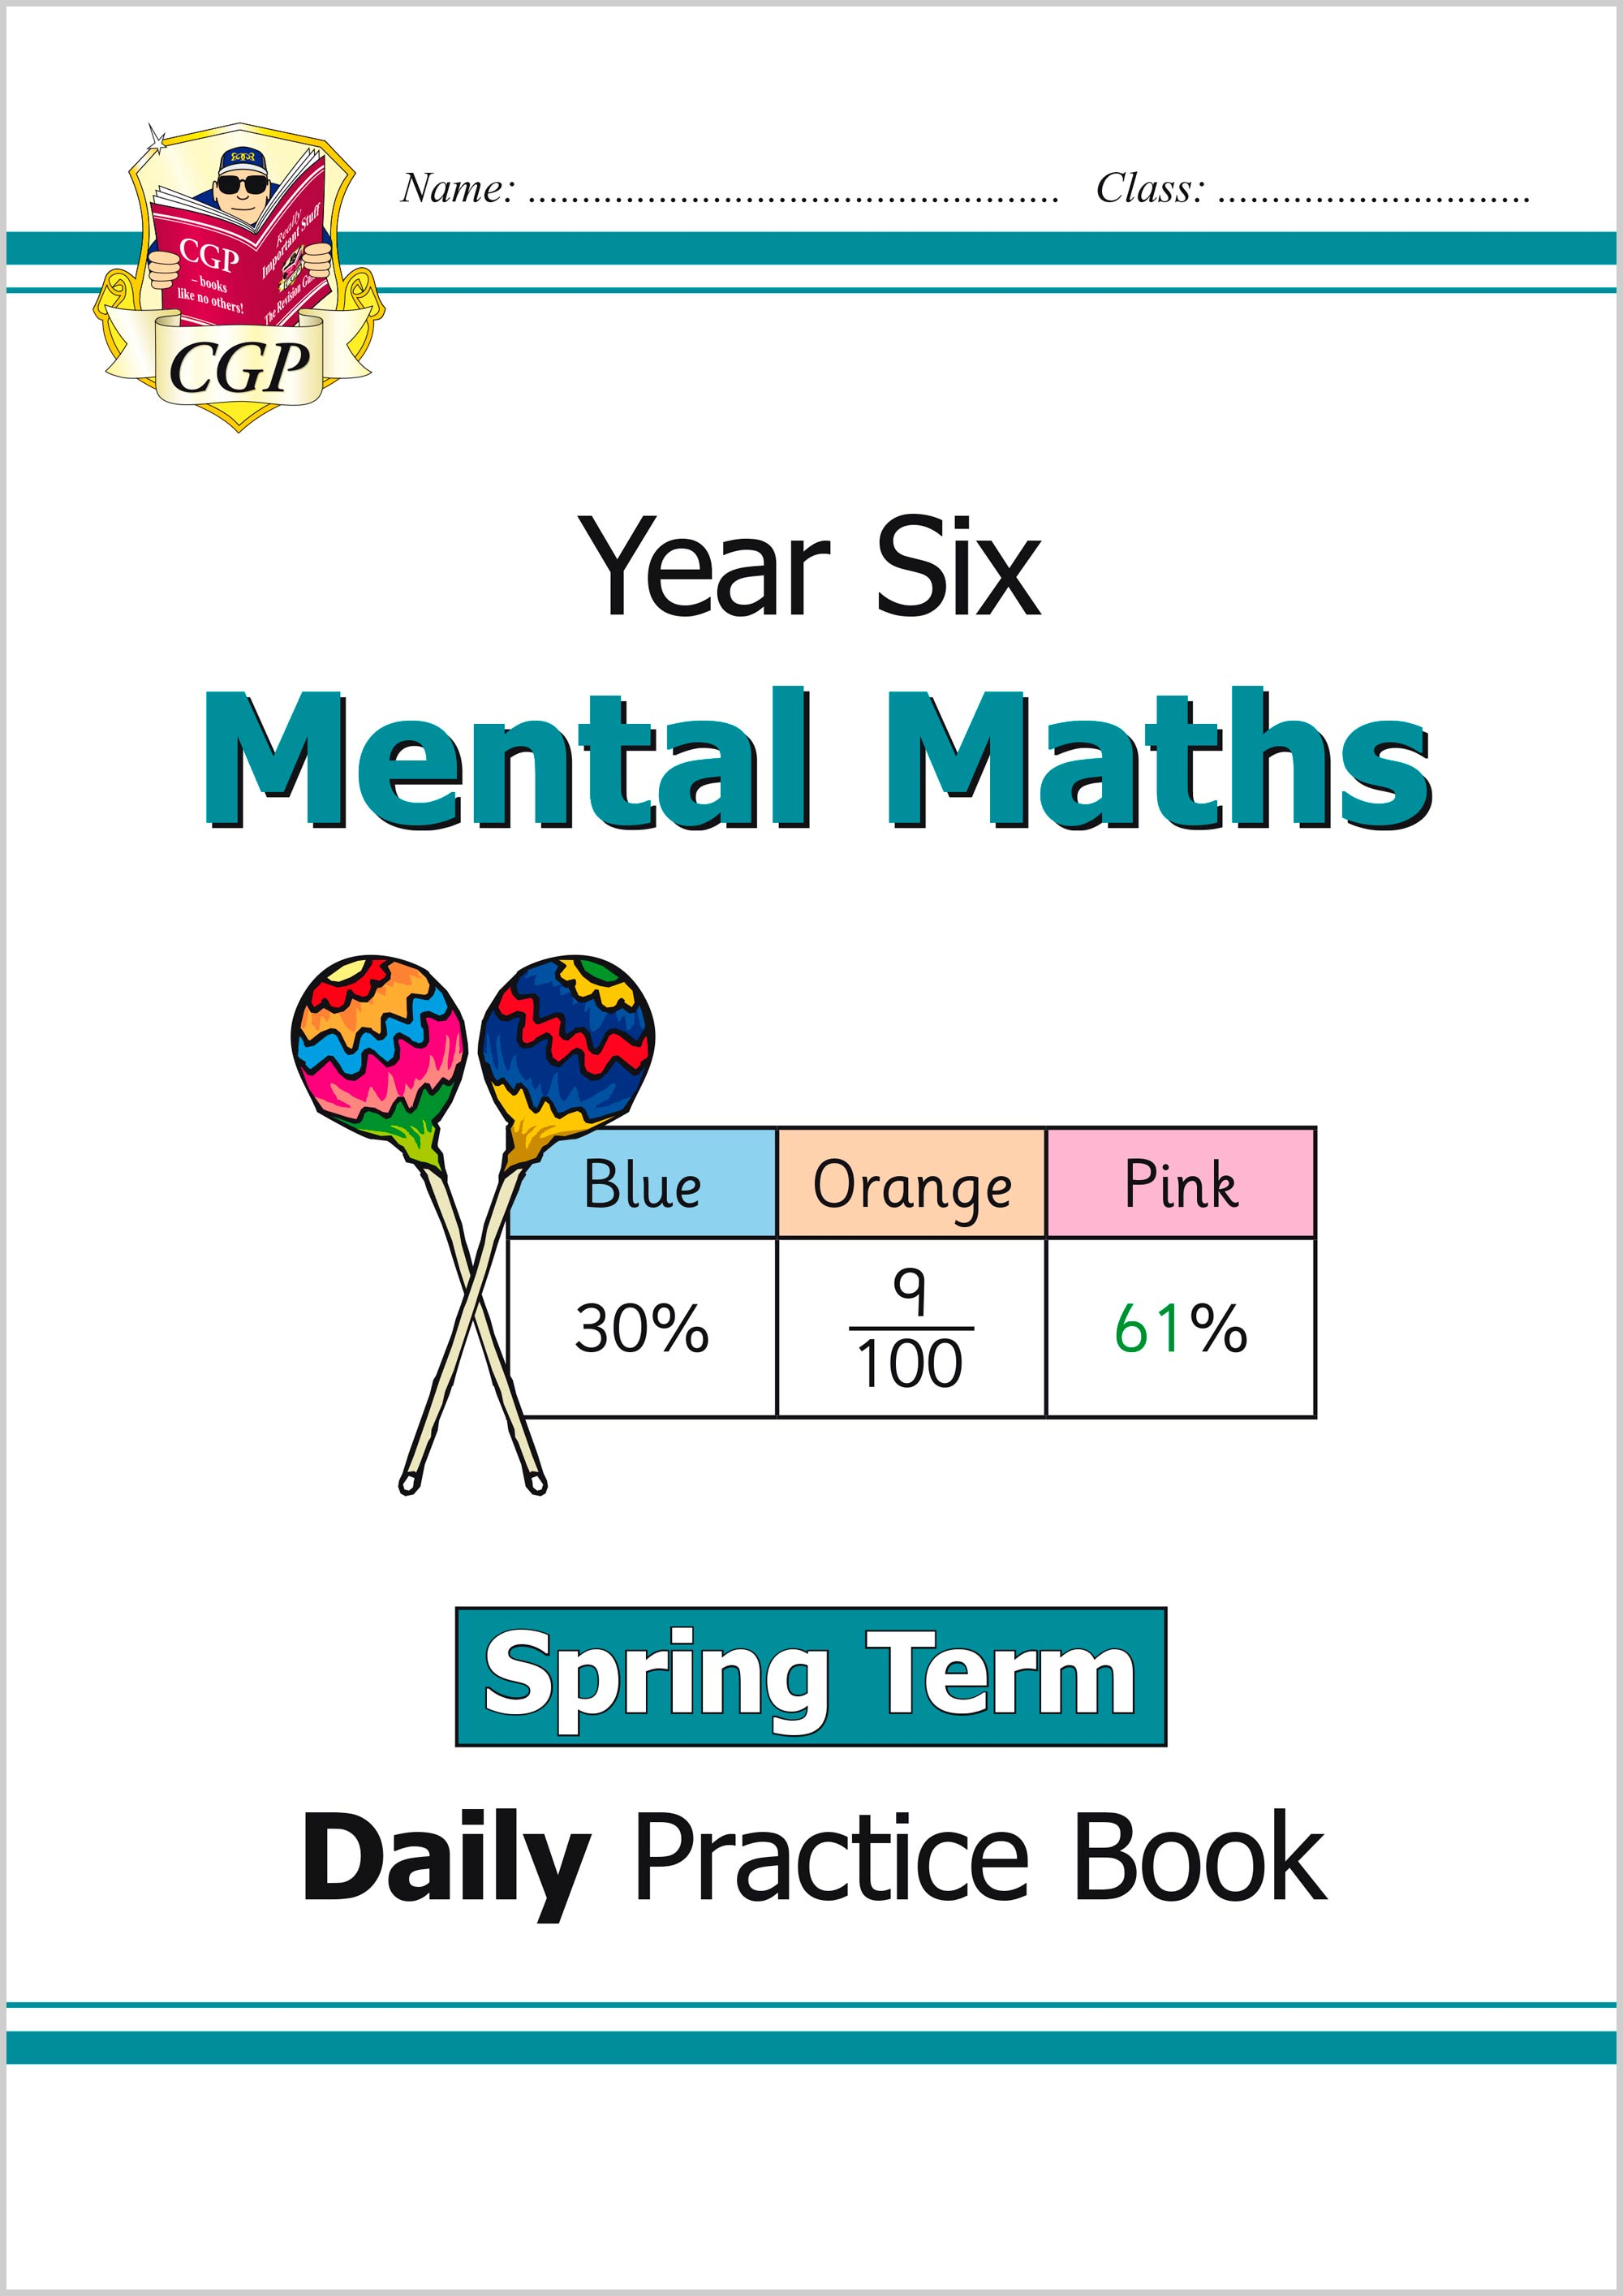 M6MWSP21 - New Mental Maths Daily Practice Book: Year 6 - Spring Term